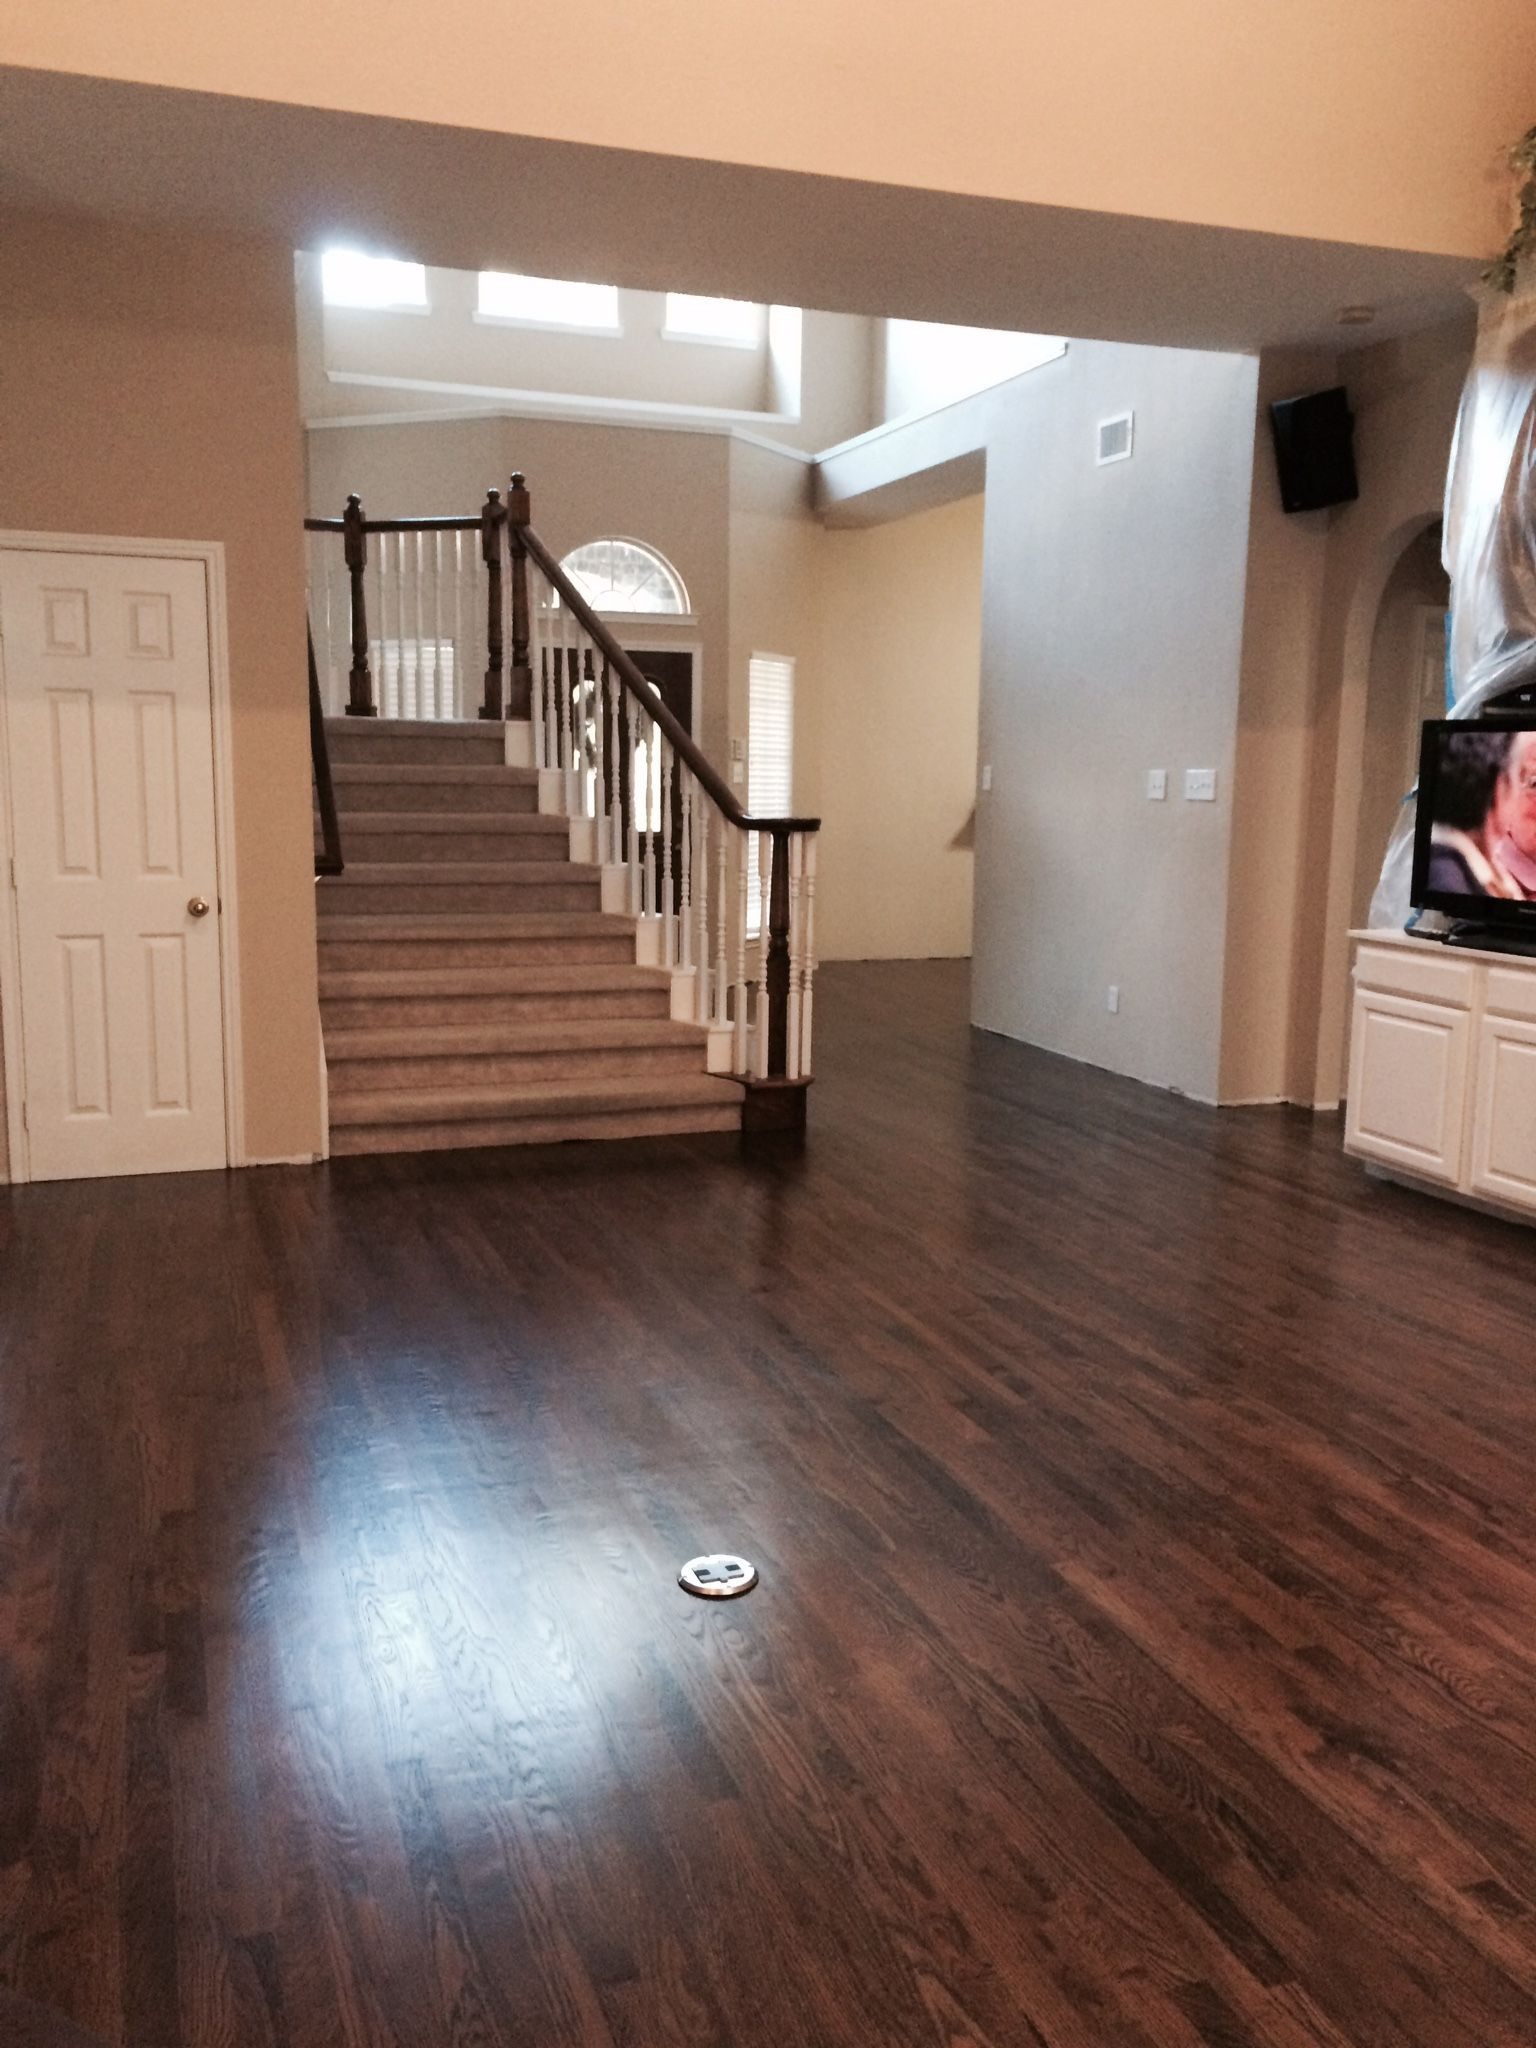 hardwood floor sanding cost per square foot of dark walnut stain on white oak hardwood remodel 1floors in 2018 with regard to dark walnut stain on white oak hardwood walnut hardwood flooring hardwood floor stain colors